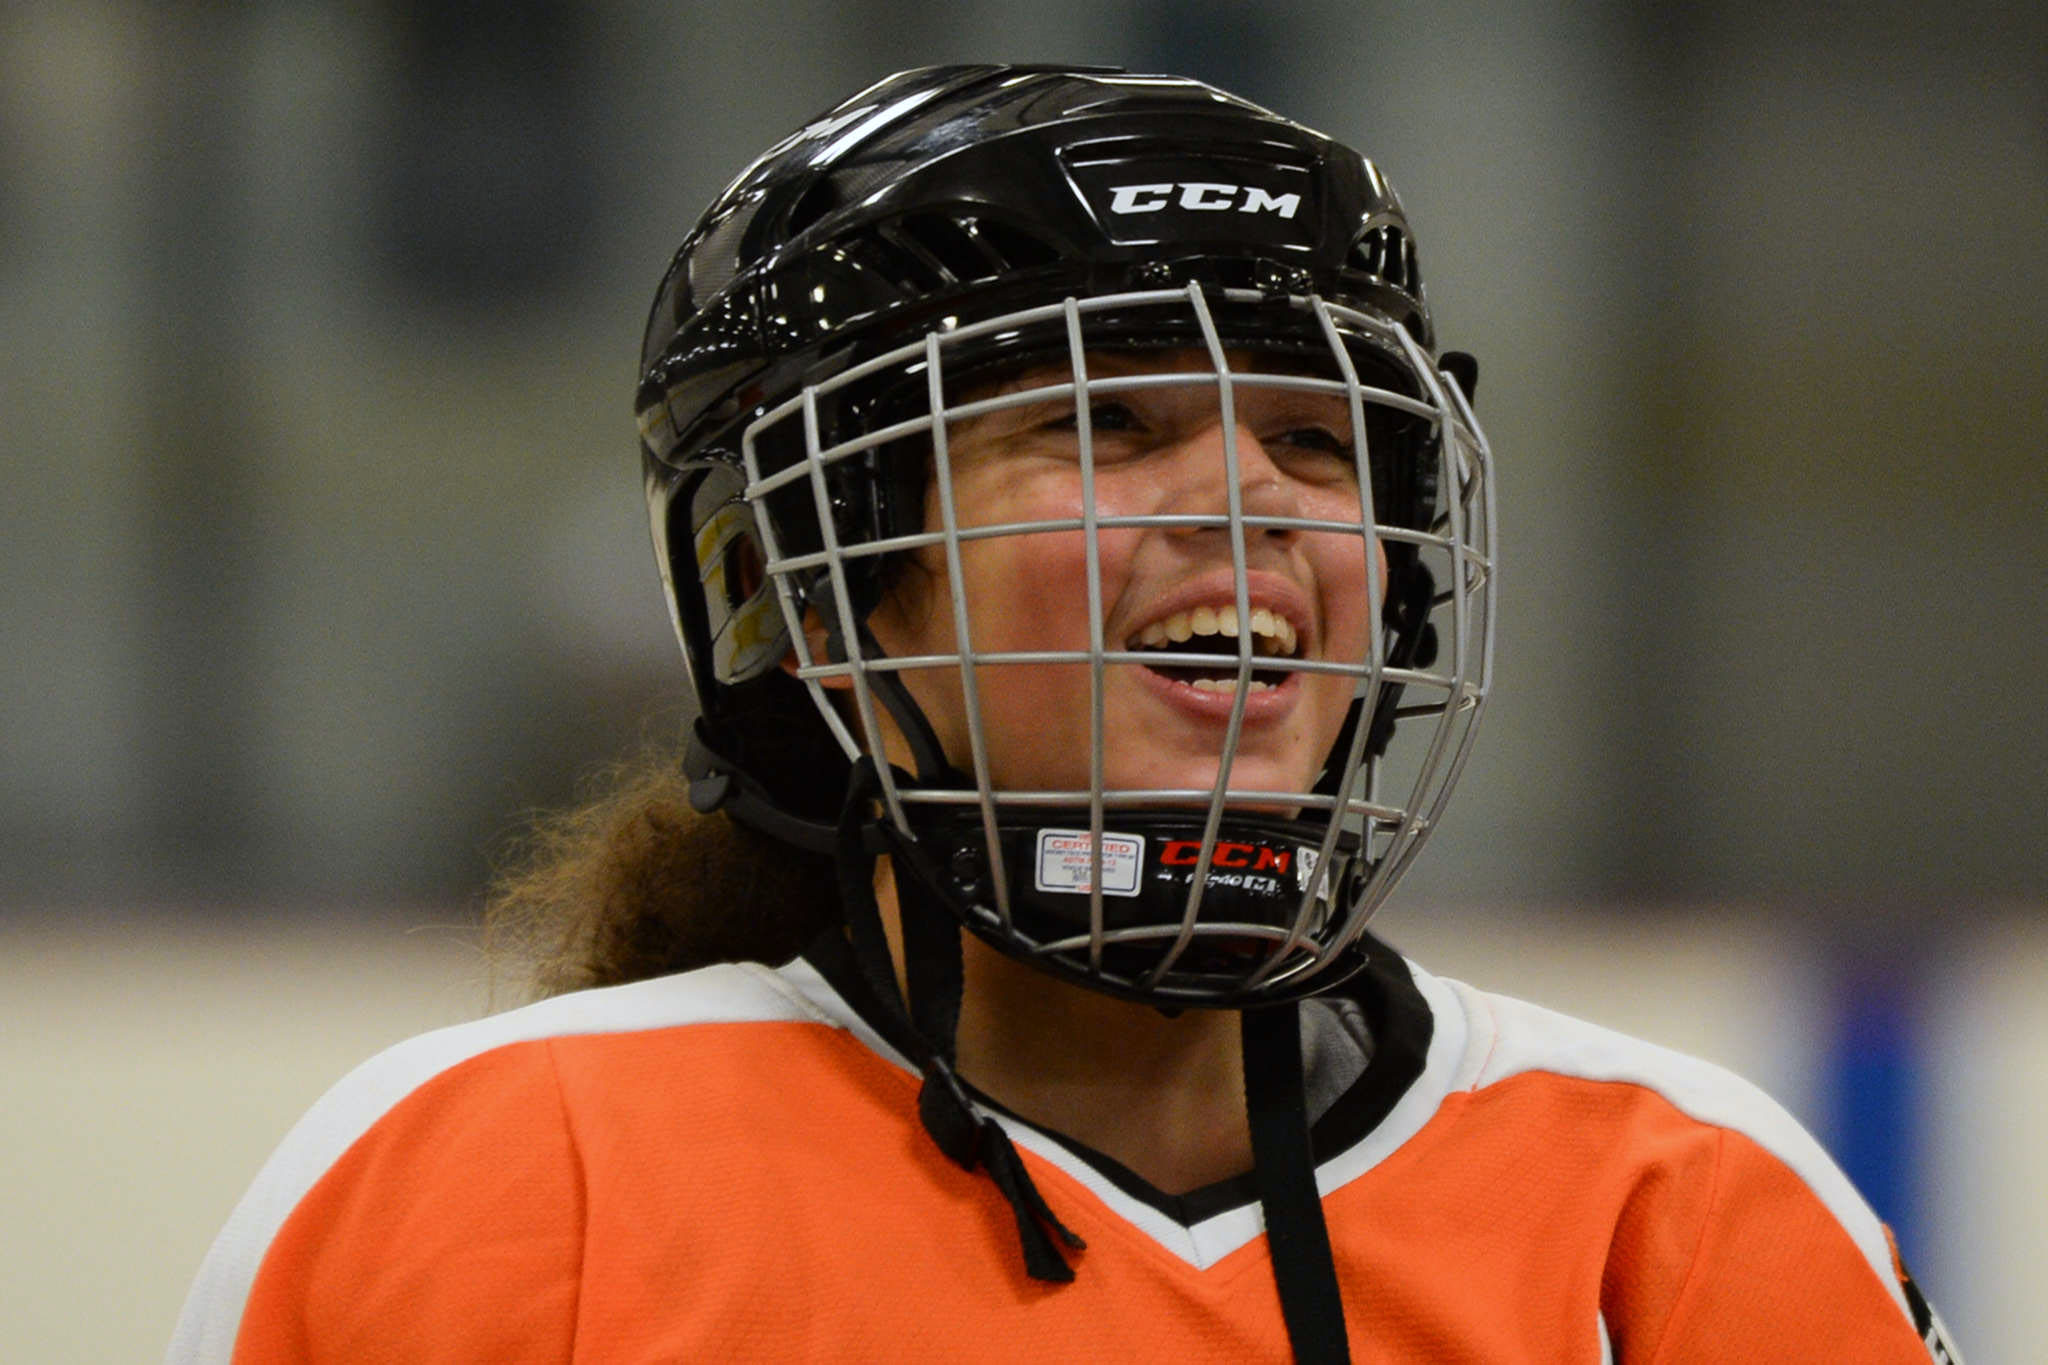 Rosie Castro during practice on Thursday Oct. 19. Castro and 10 other players from the Philadelphia area will be traveling to Boston to meet the U.S. Women´s National Hockey team. GENEVA HEFFERNAN / Staff Photographer